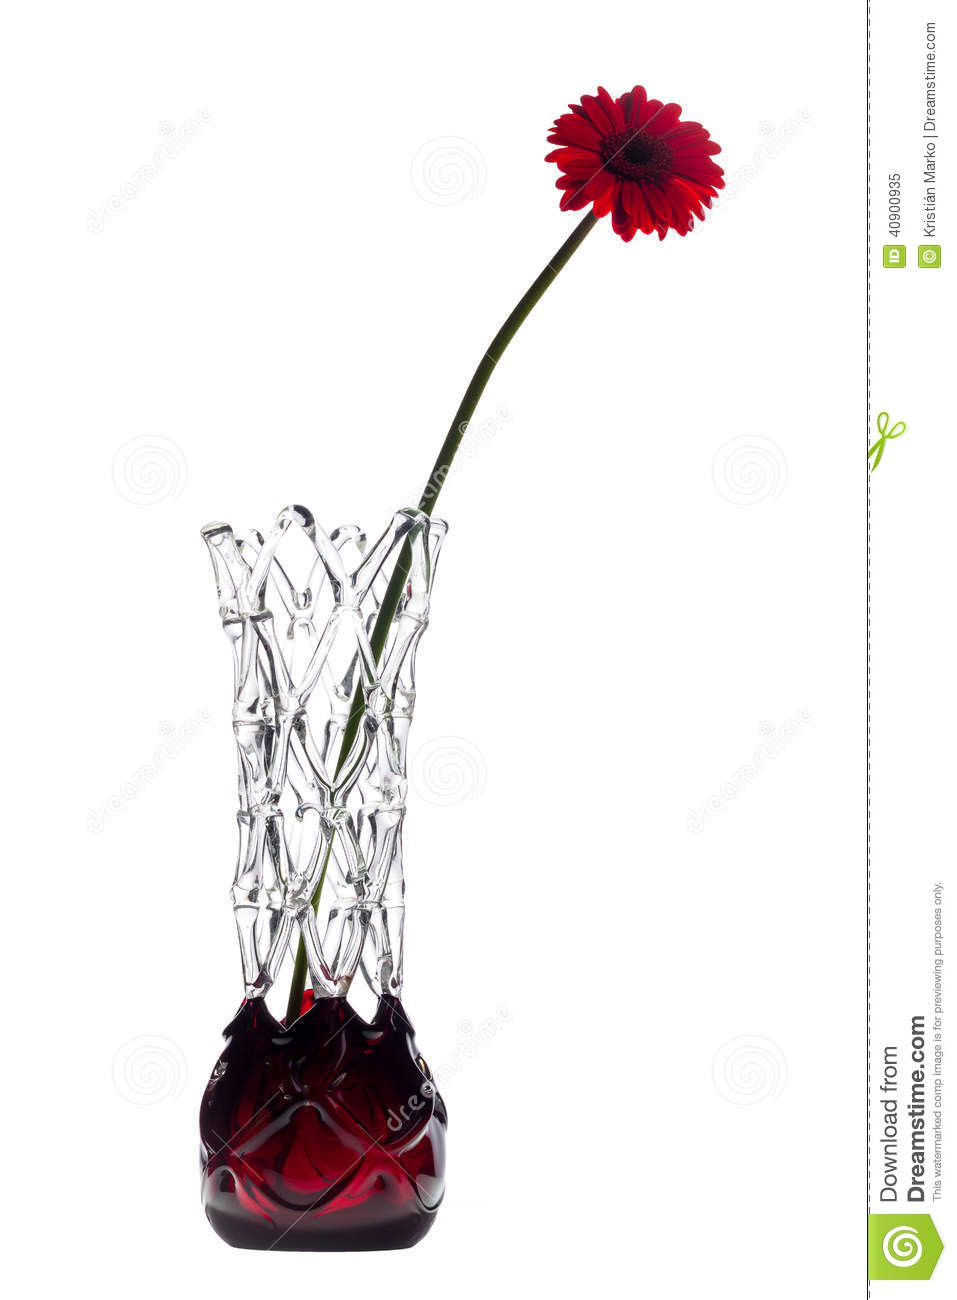 red and white glass vase of abstract vase on white background with one red gerbera flower stock with regard to download abstract vase on white background with one red gerbera flower stock image image of